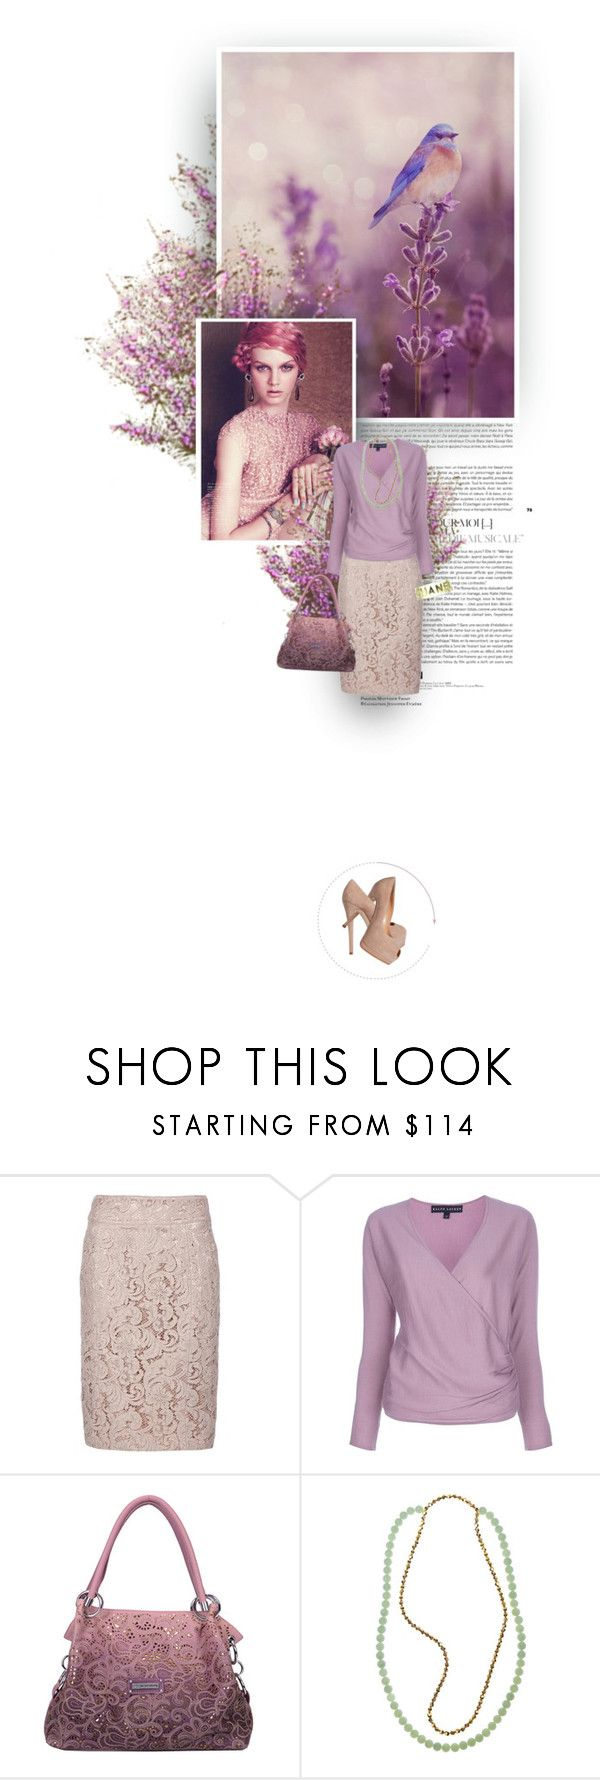 """""""Lavender Hues"""" by maude-lebowski ❤ liked on Polyvore featuring Trilogy, Burberry, Ralph Lauren Black Label, Giuseppe Zanotti, FLORIAN and Chanel"""